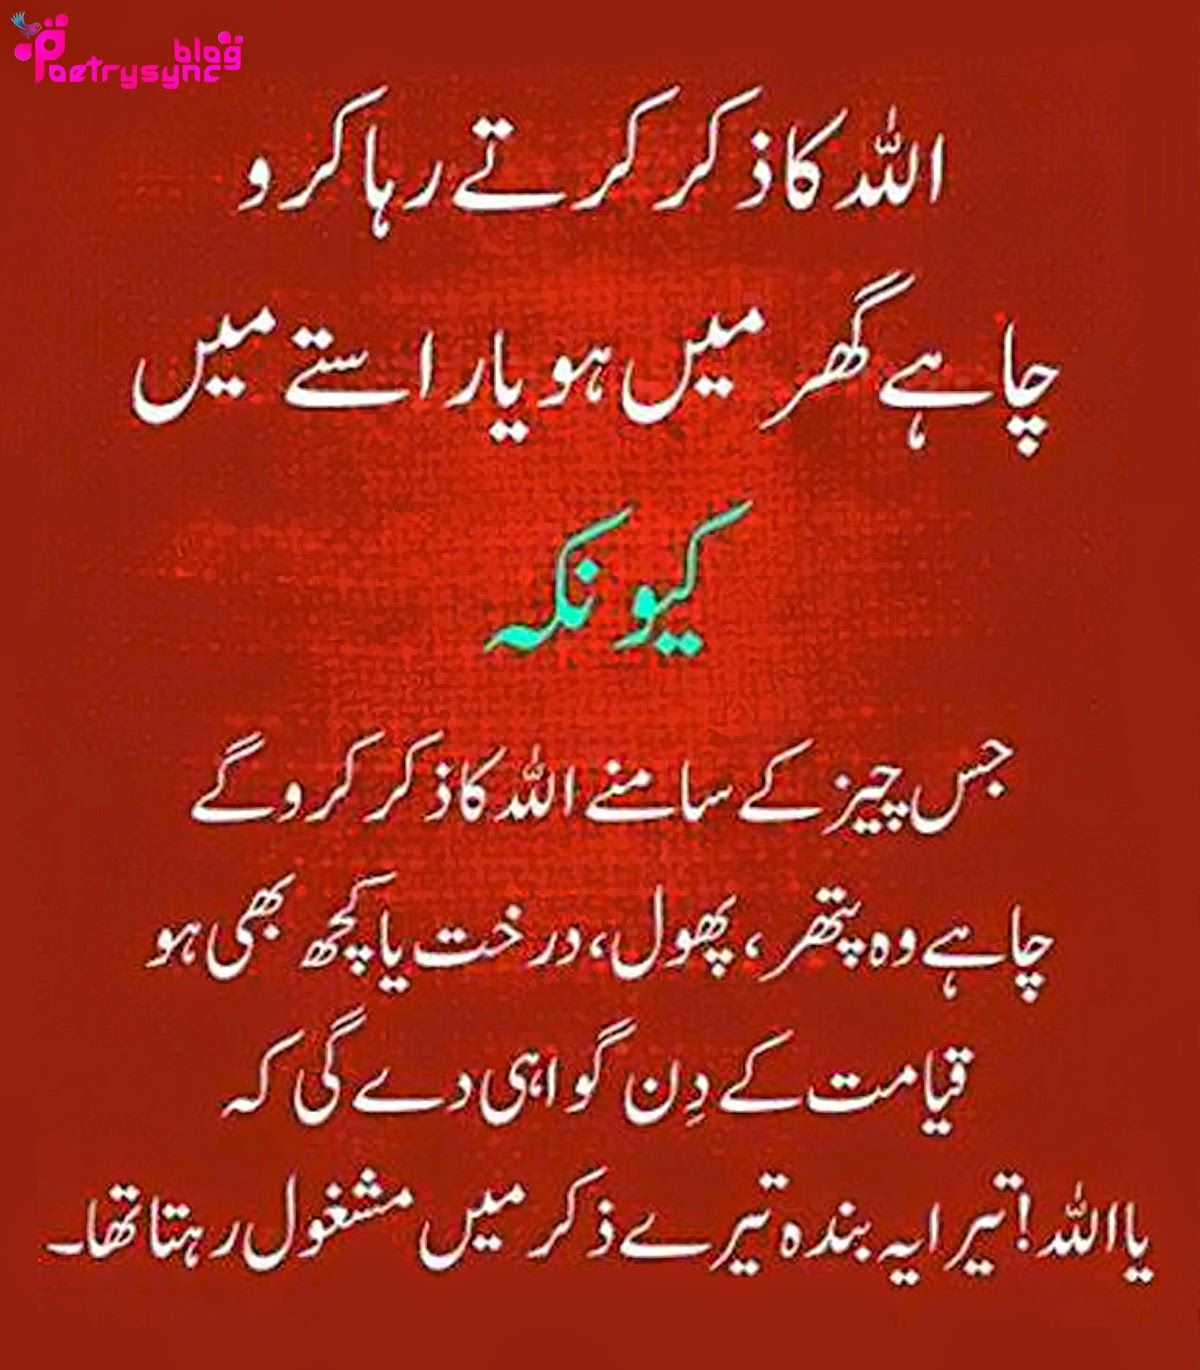 Islamic Quotes Hadees And Sayings Sms In Urdu With Pictures For